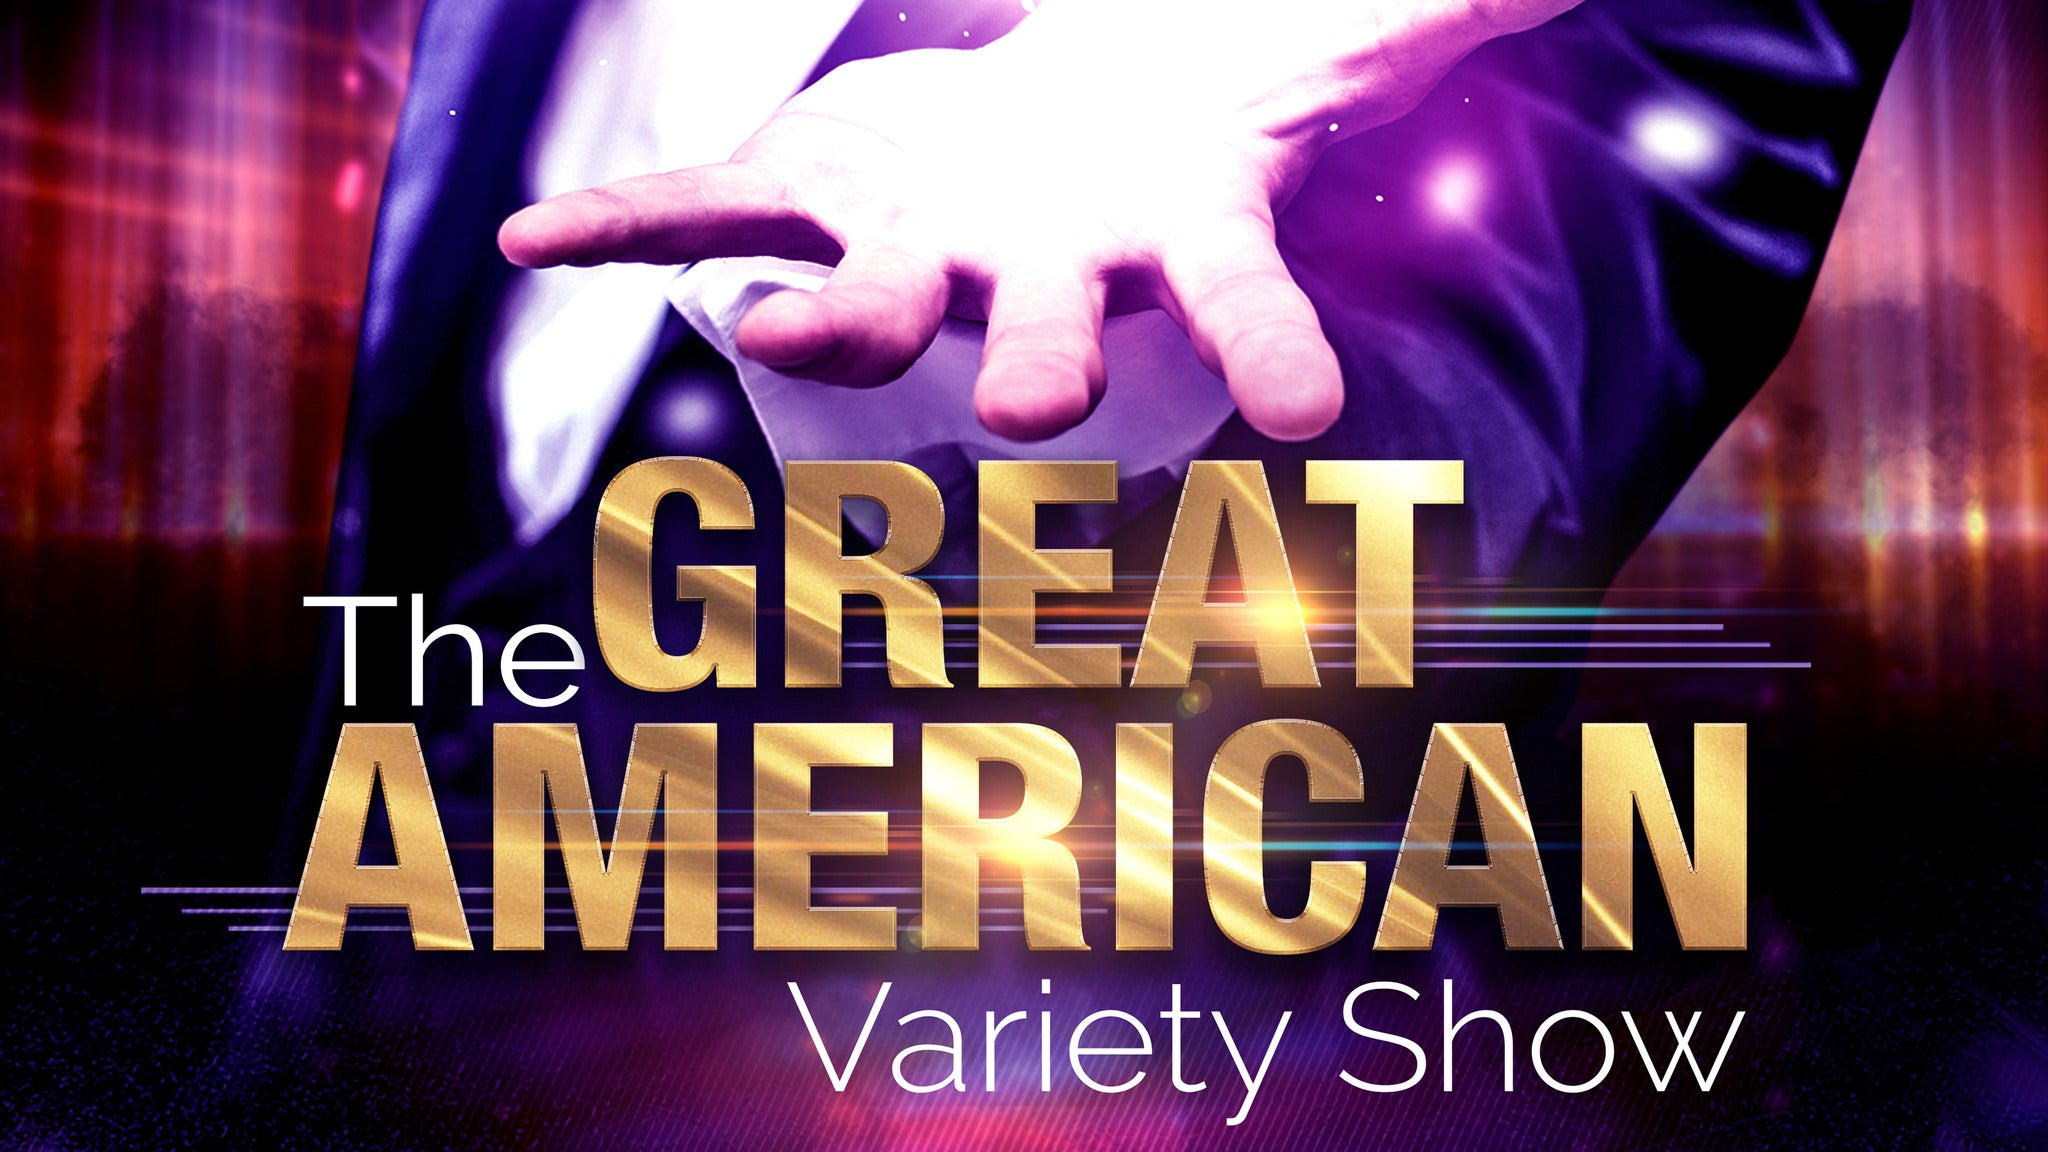 The Great American Variety Show